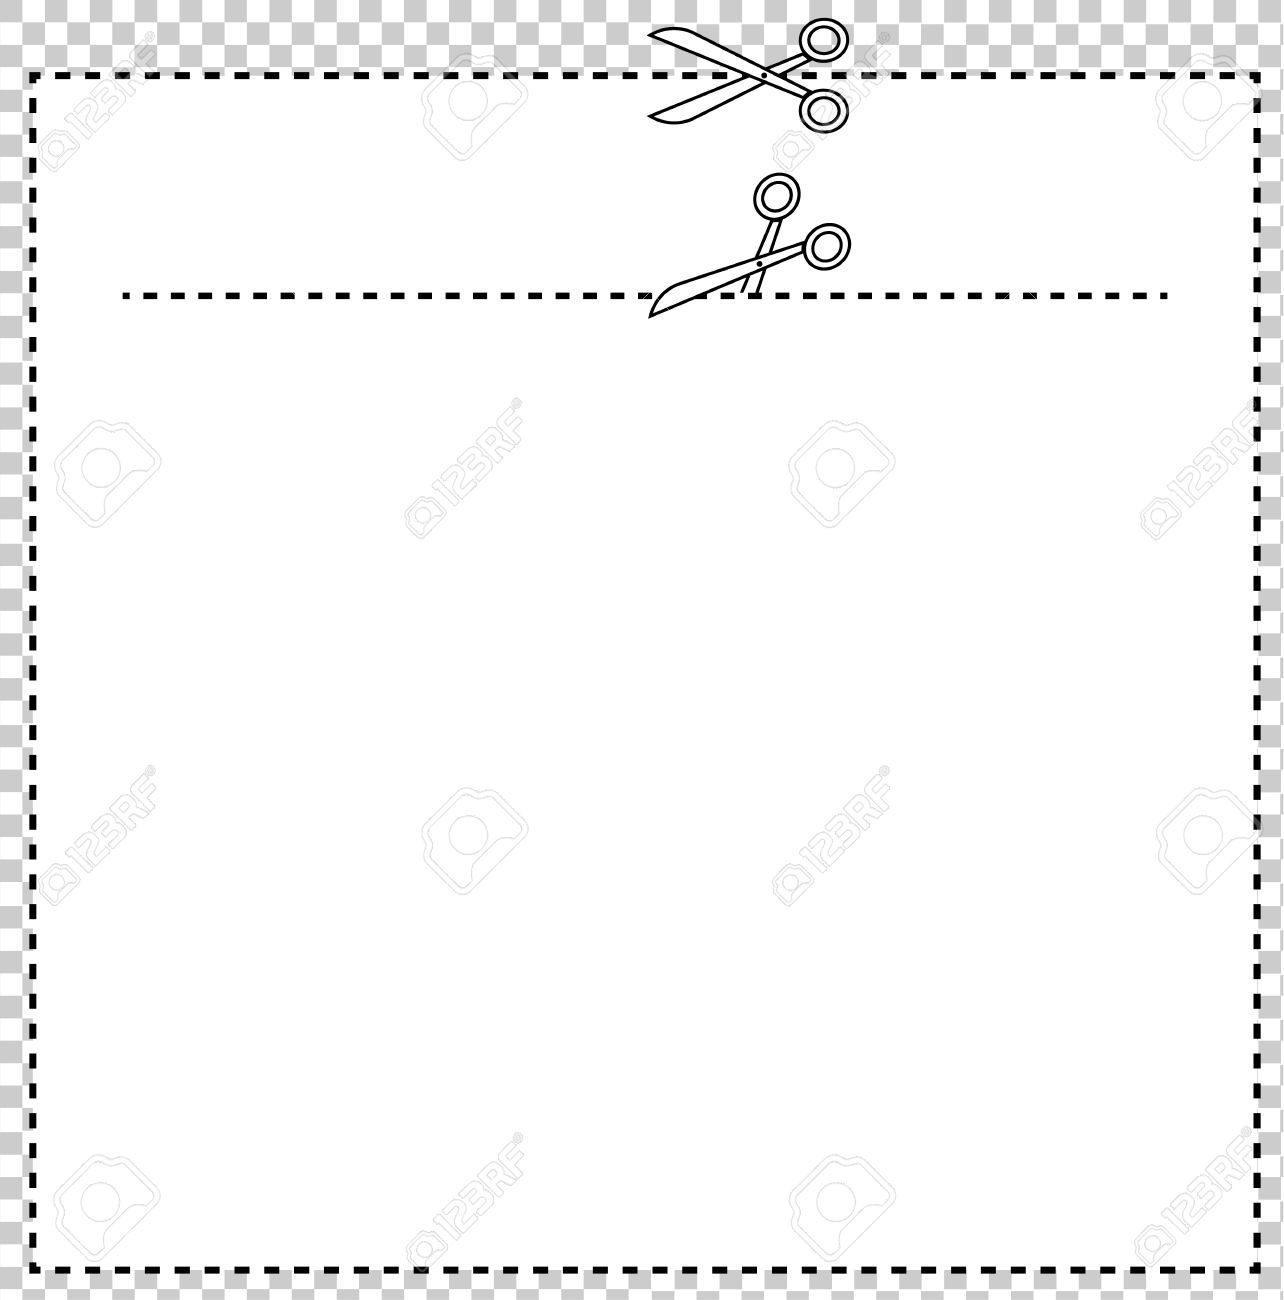 babysitting voucher template - Military.bralicious.co